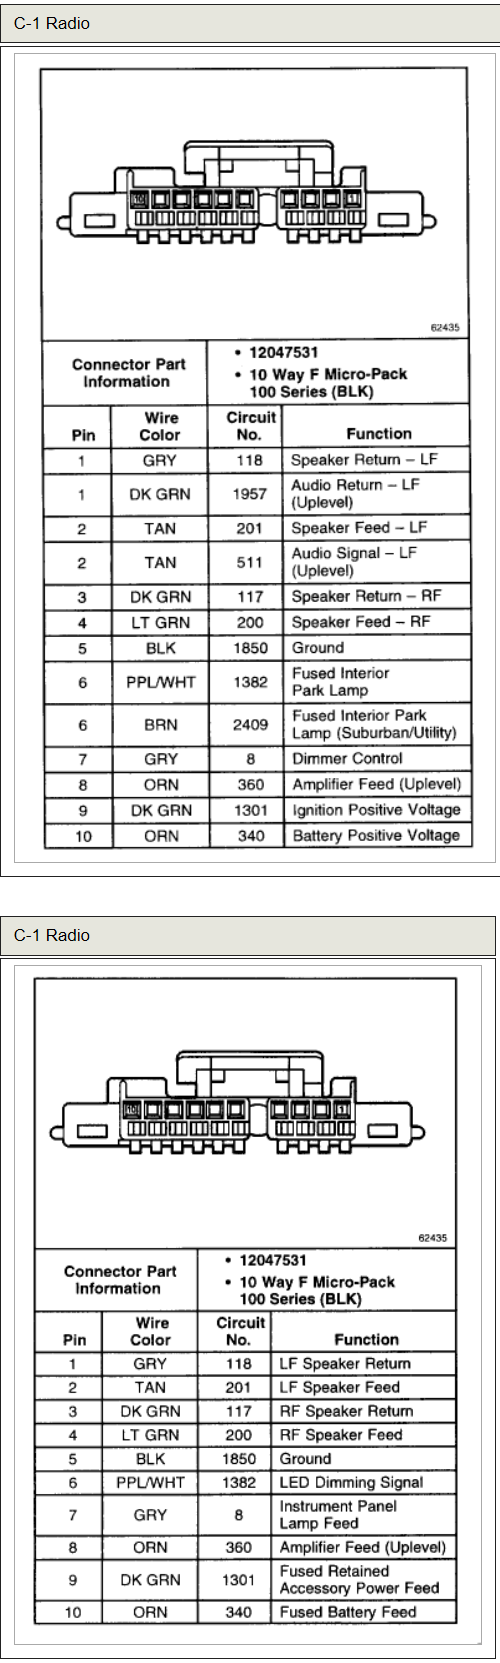 Chevrolet Tahoe LS 2000 stereo wiring connector 2 chevrolet car radio stereo audio wiring diagram autoradio 2004 chevy venture stereo wiring diagram at creativeand.co